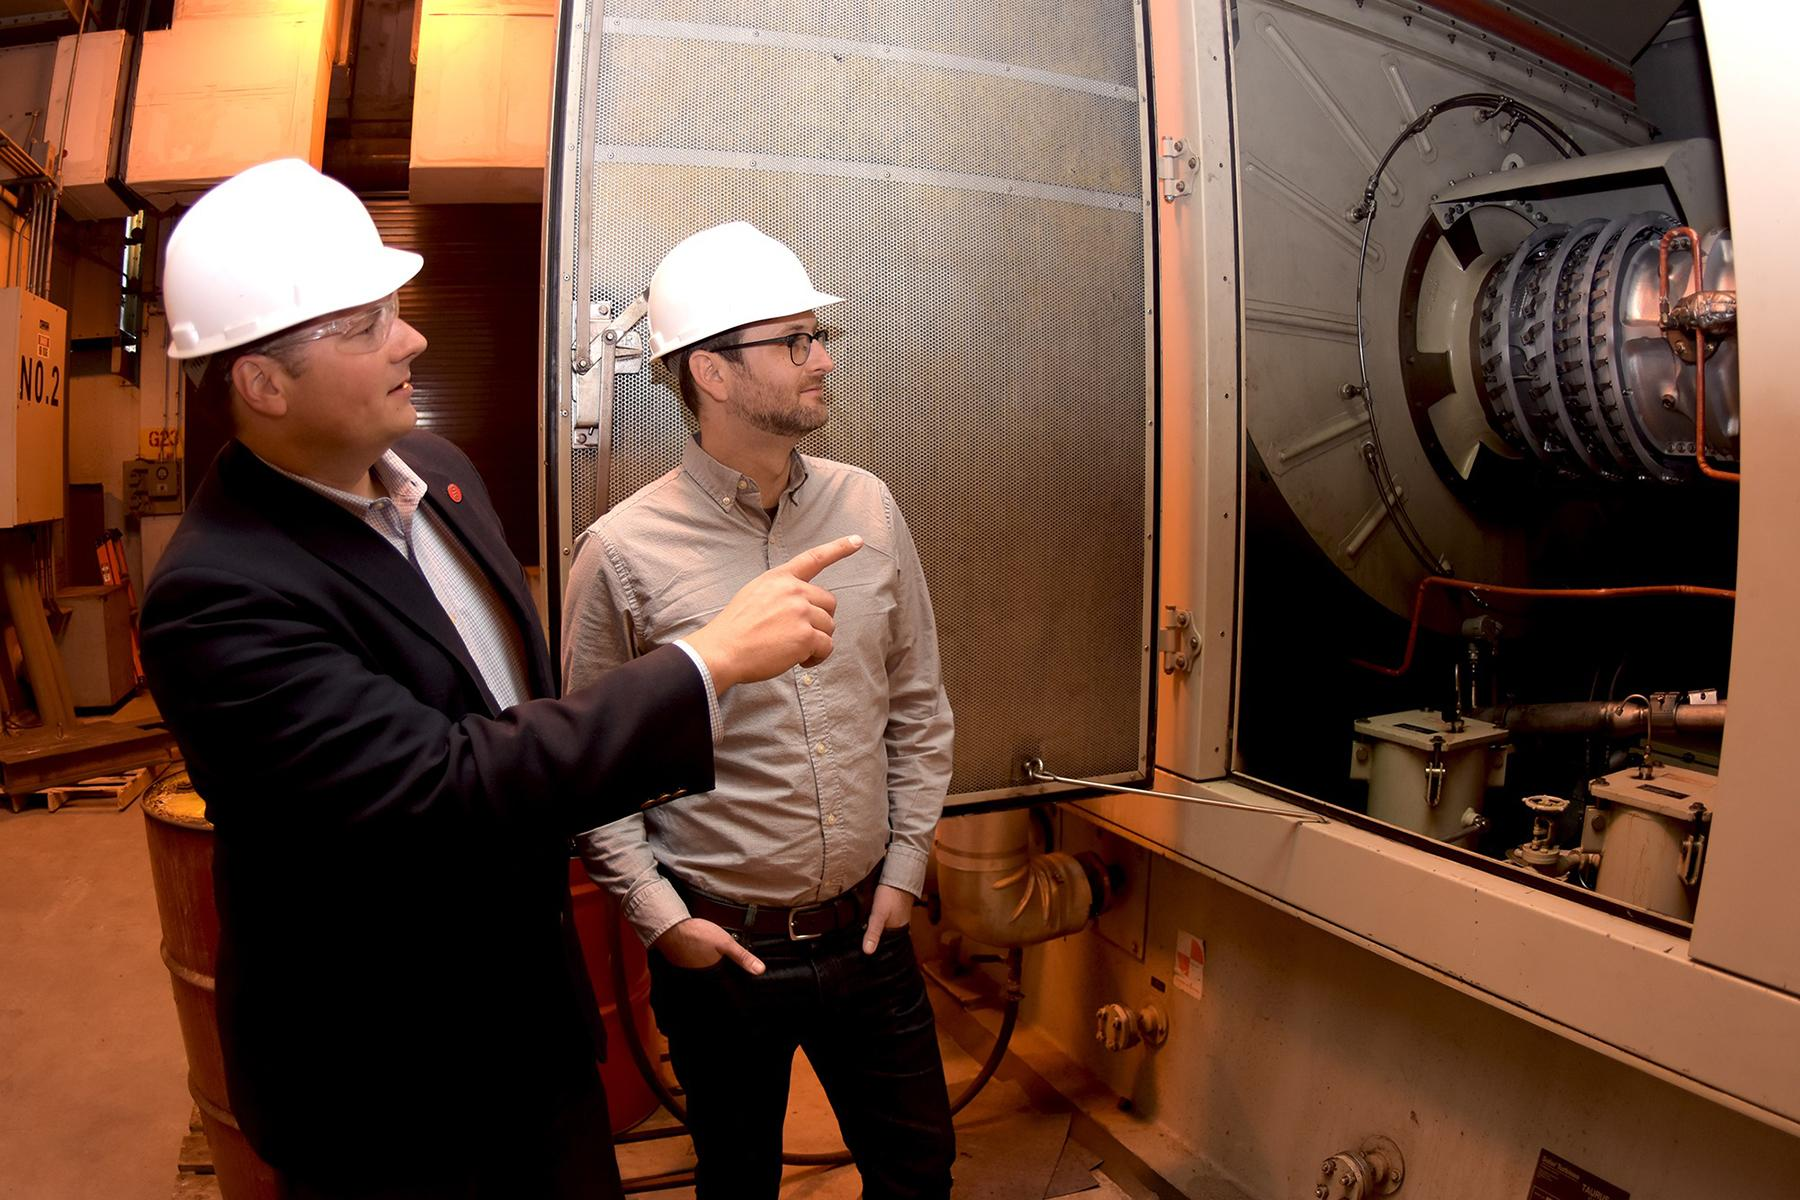 Cliff Haefke, director of the UIC Energy Resources Center, left, and policy analyst Graeme Miller analyze the 7-megawatt combined heat and power combustion turbine at the UIC West Campus Utilities Plant. (Courtesy University of Illinois at Chicago)